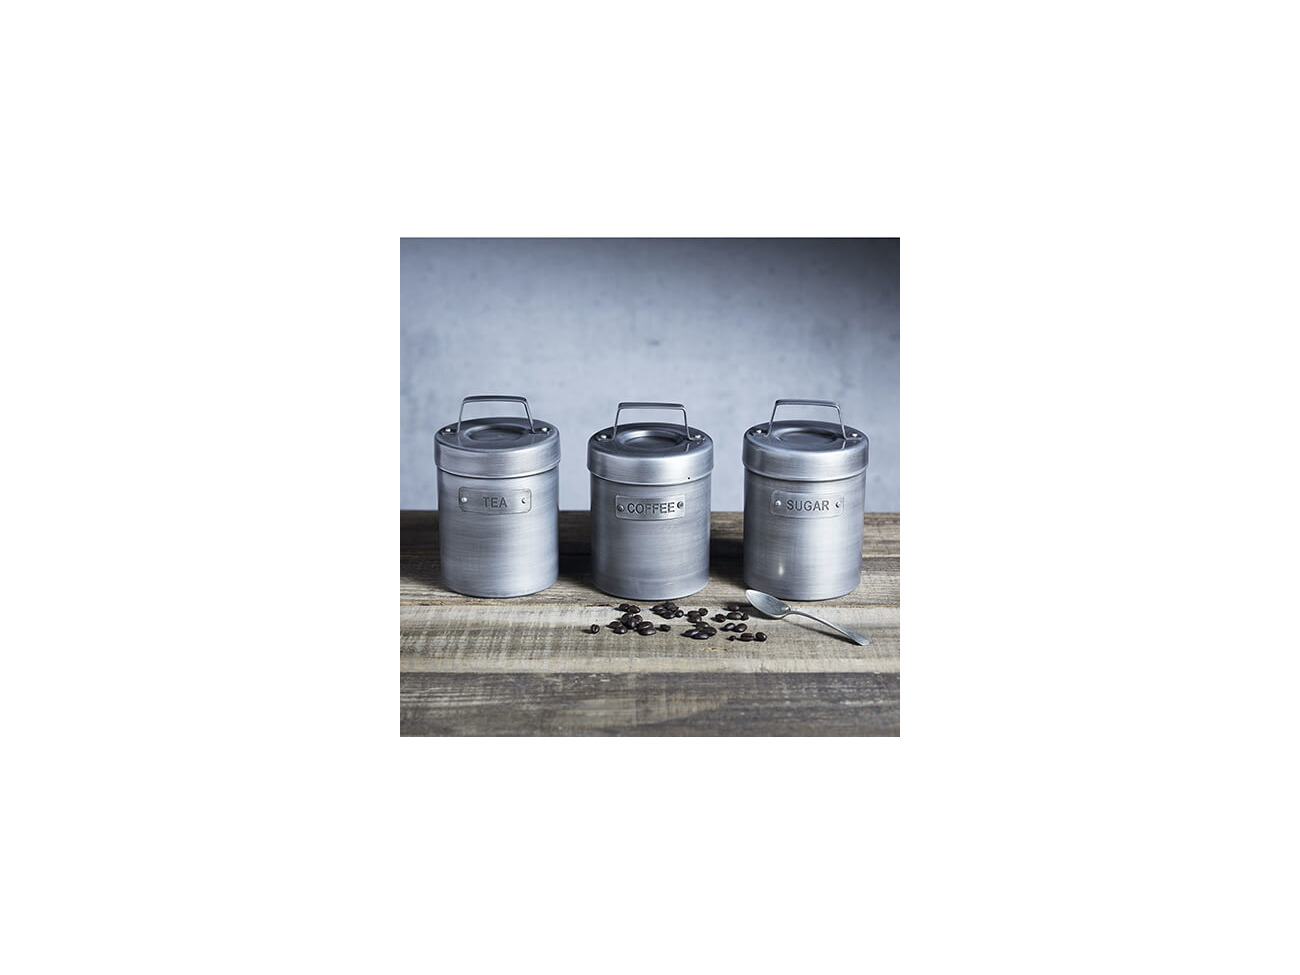 KitchenCraft Industrial Kitchen Vintage-Style Metal Coffee Canister 1.75 pts 1 L